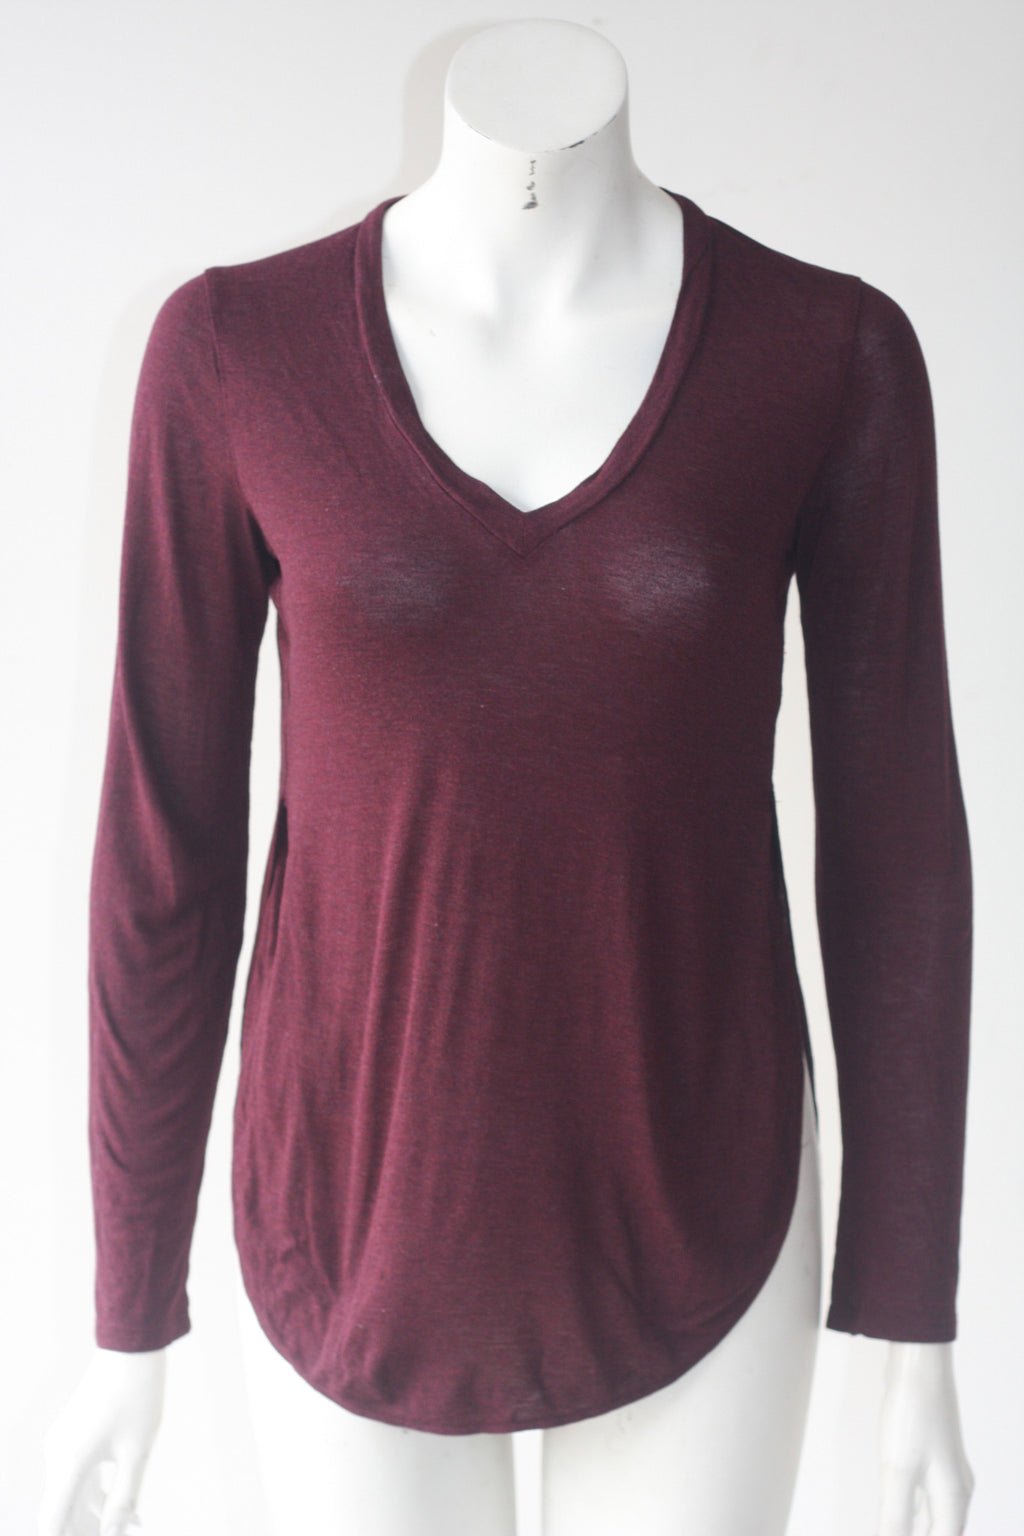 Wilfred Long Sleeve Maroon Basic V Neck T Shirt - Joyce's Closet  - 1